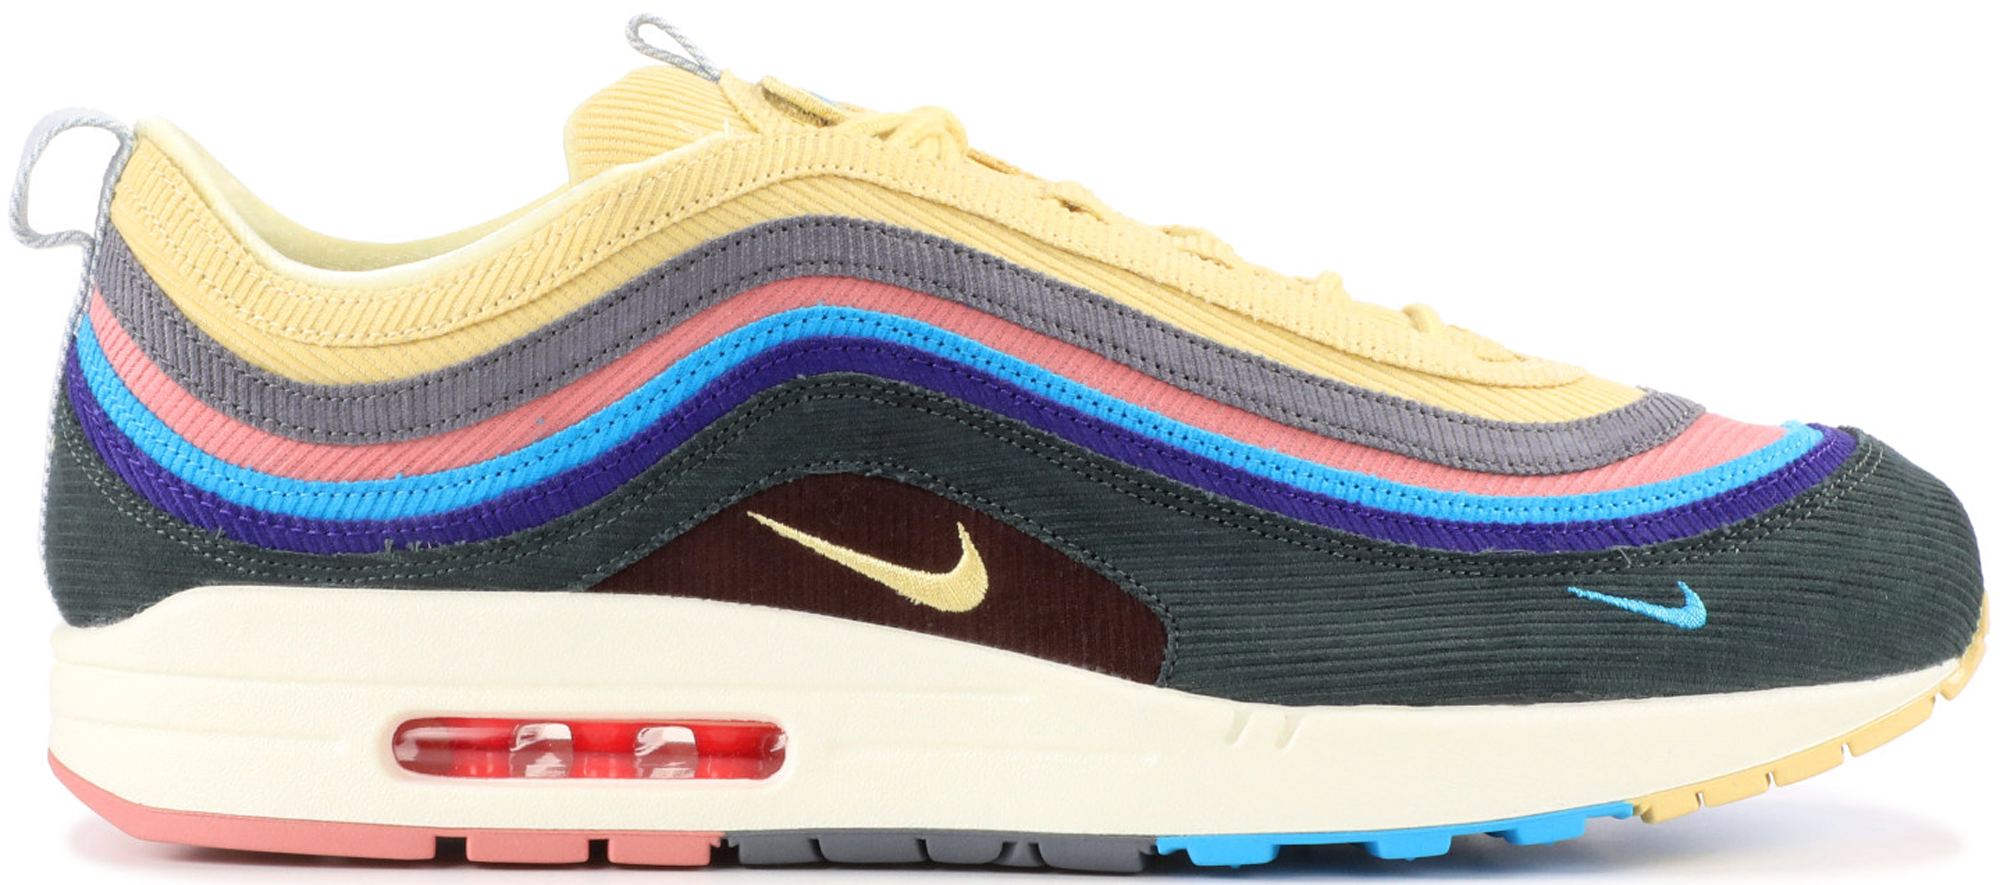 Air Max 1/97 Sean Wotherspoon (All Accessories and Dustbag)